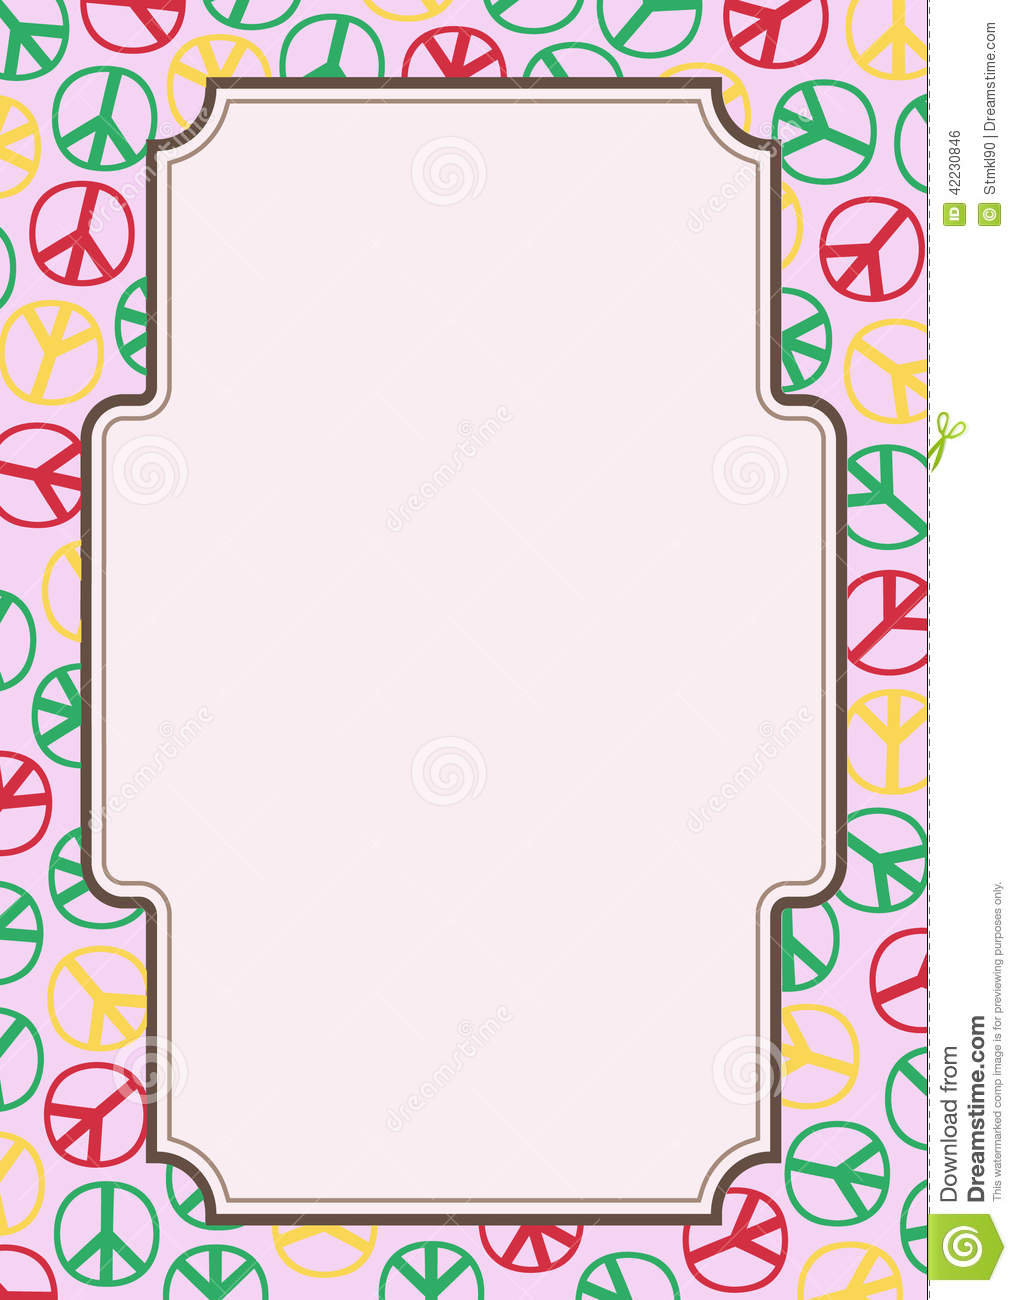 Hippie Frame    Ign Of Peace And Pacifism Symbol Of The Hippie